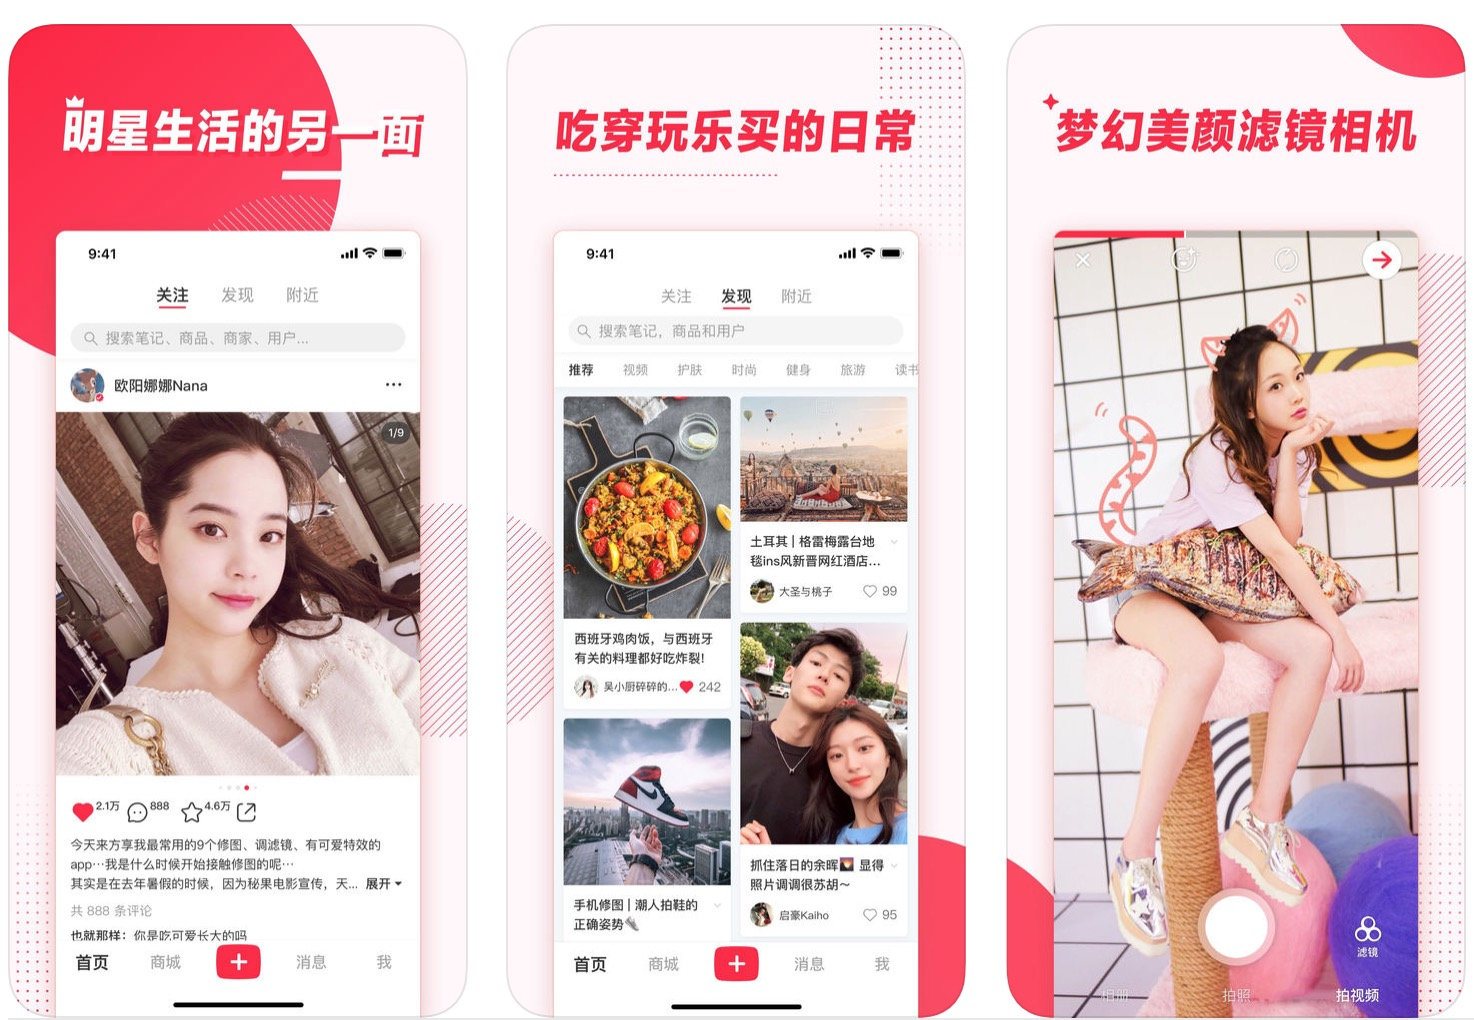 Content Emerges As New Driver Of Chinese E-commerce · TechNode